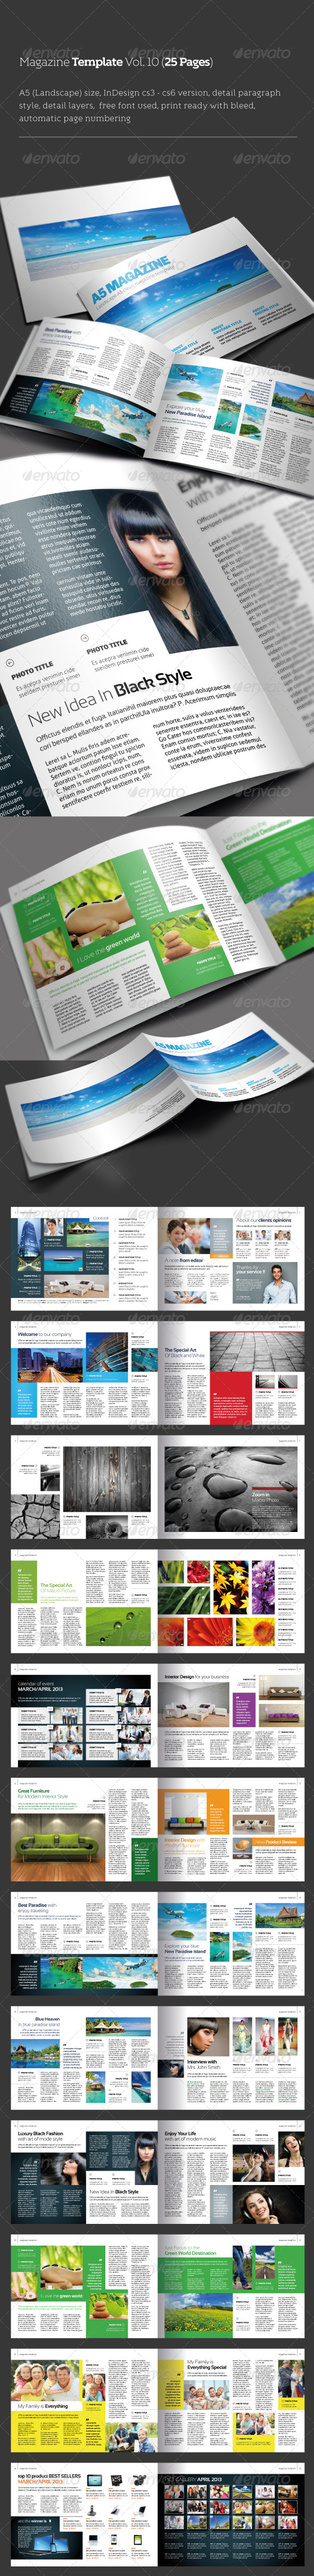 GraphicRiver InDesign Magazine Template Vol 10 25 pages 4353021